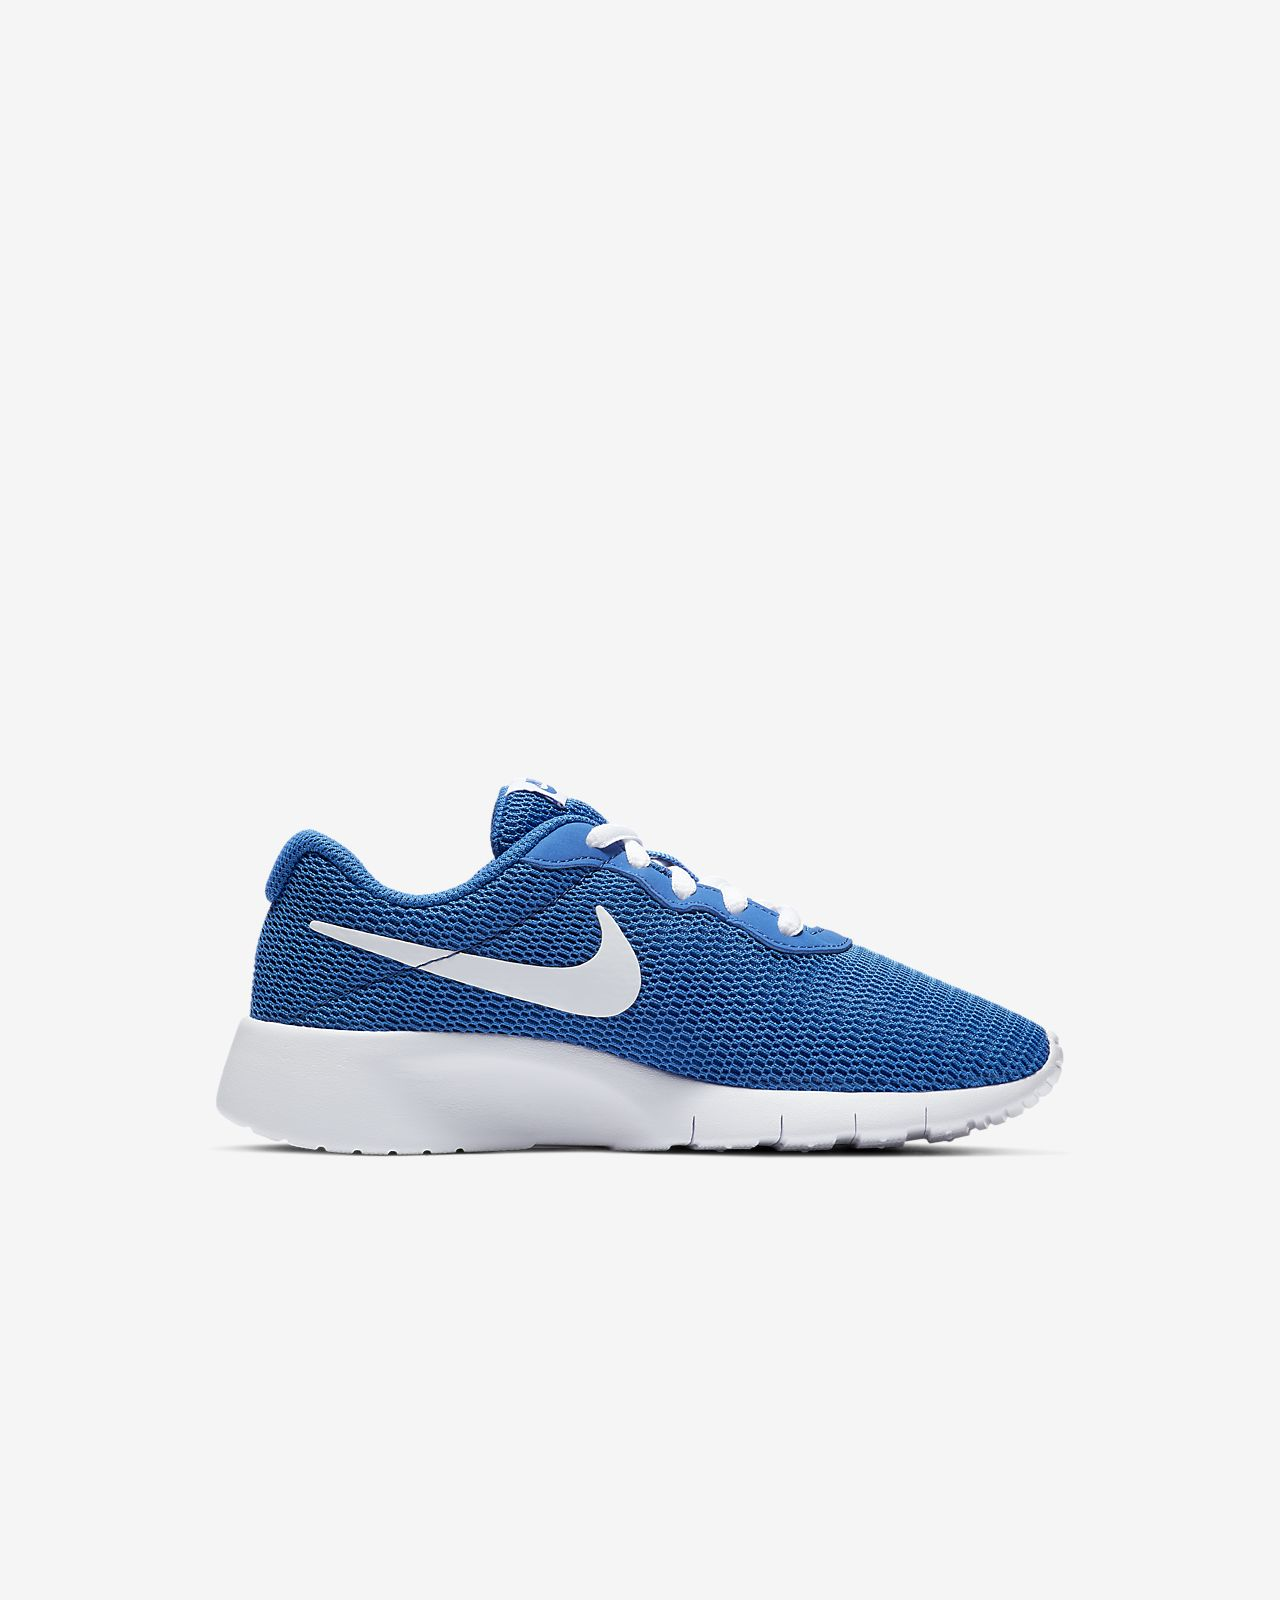 eeda25481749 Nike Tanjun Little Kids  Shoe (Wide). Nike.com